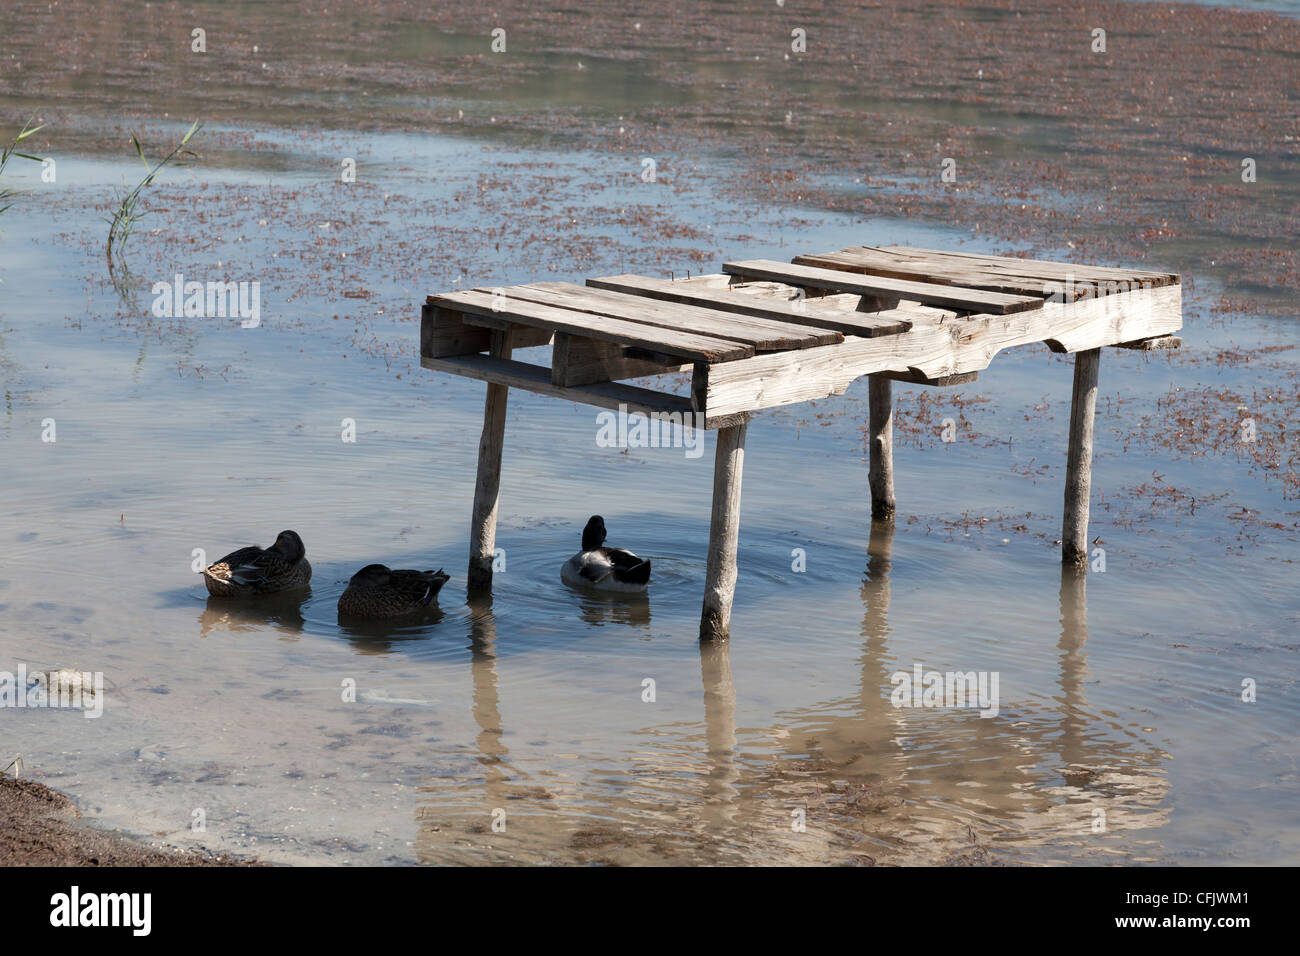 Ducks on lake sheltering from the sun in the shade of a broken pontoon - Stock Image